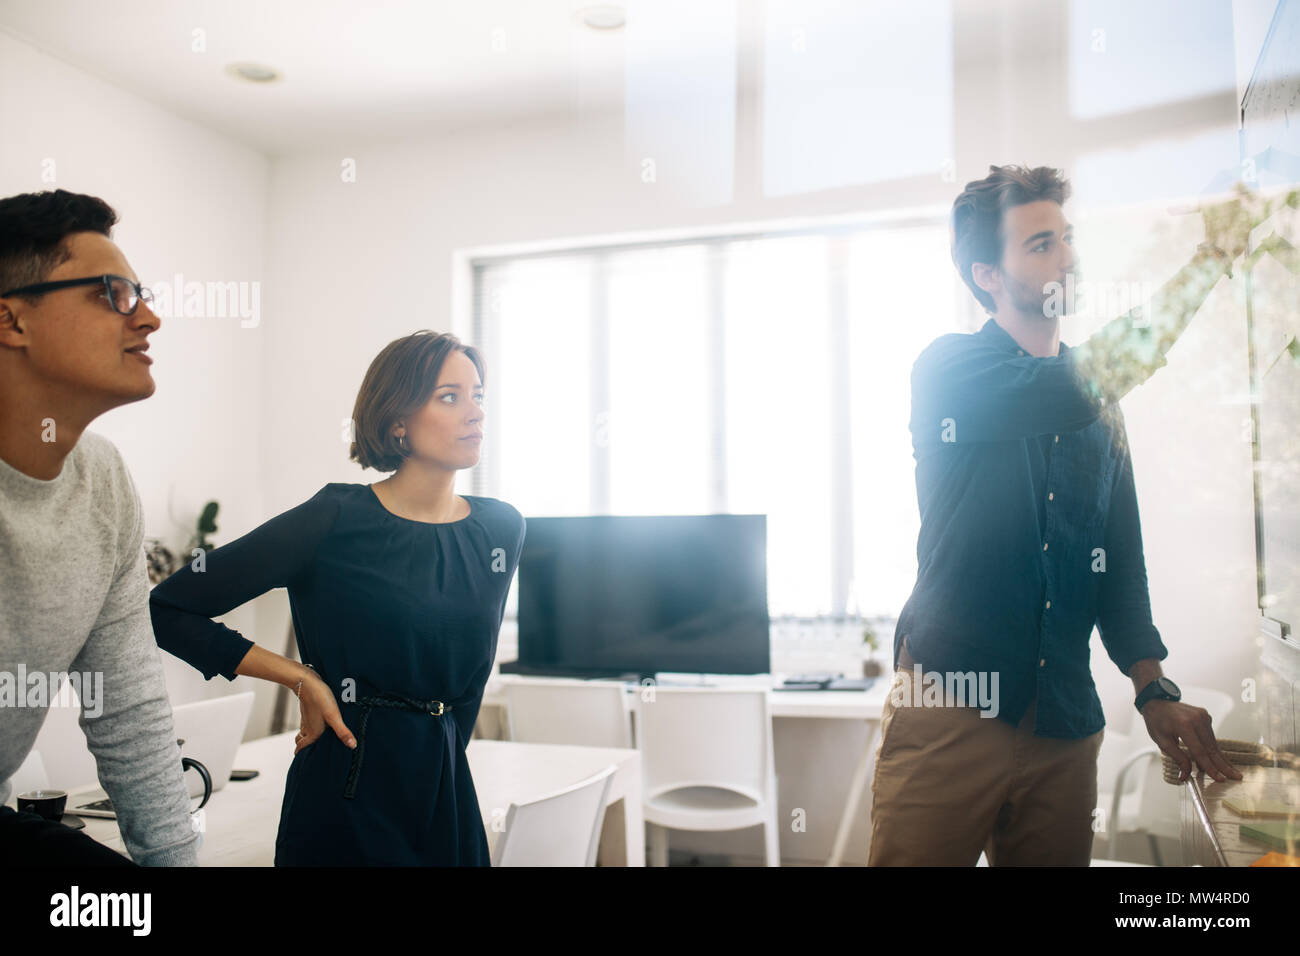 Man writing on board in the meeting room while his colleagues look on. Application developers in the board room discussing ideas and work. - Stock Image